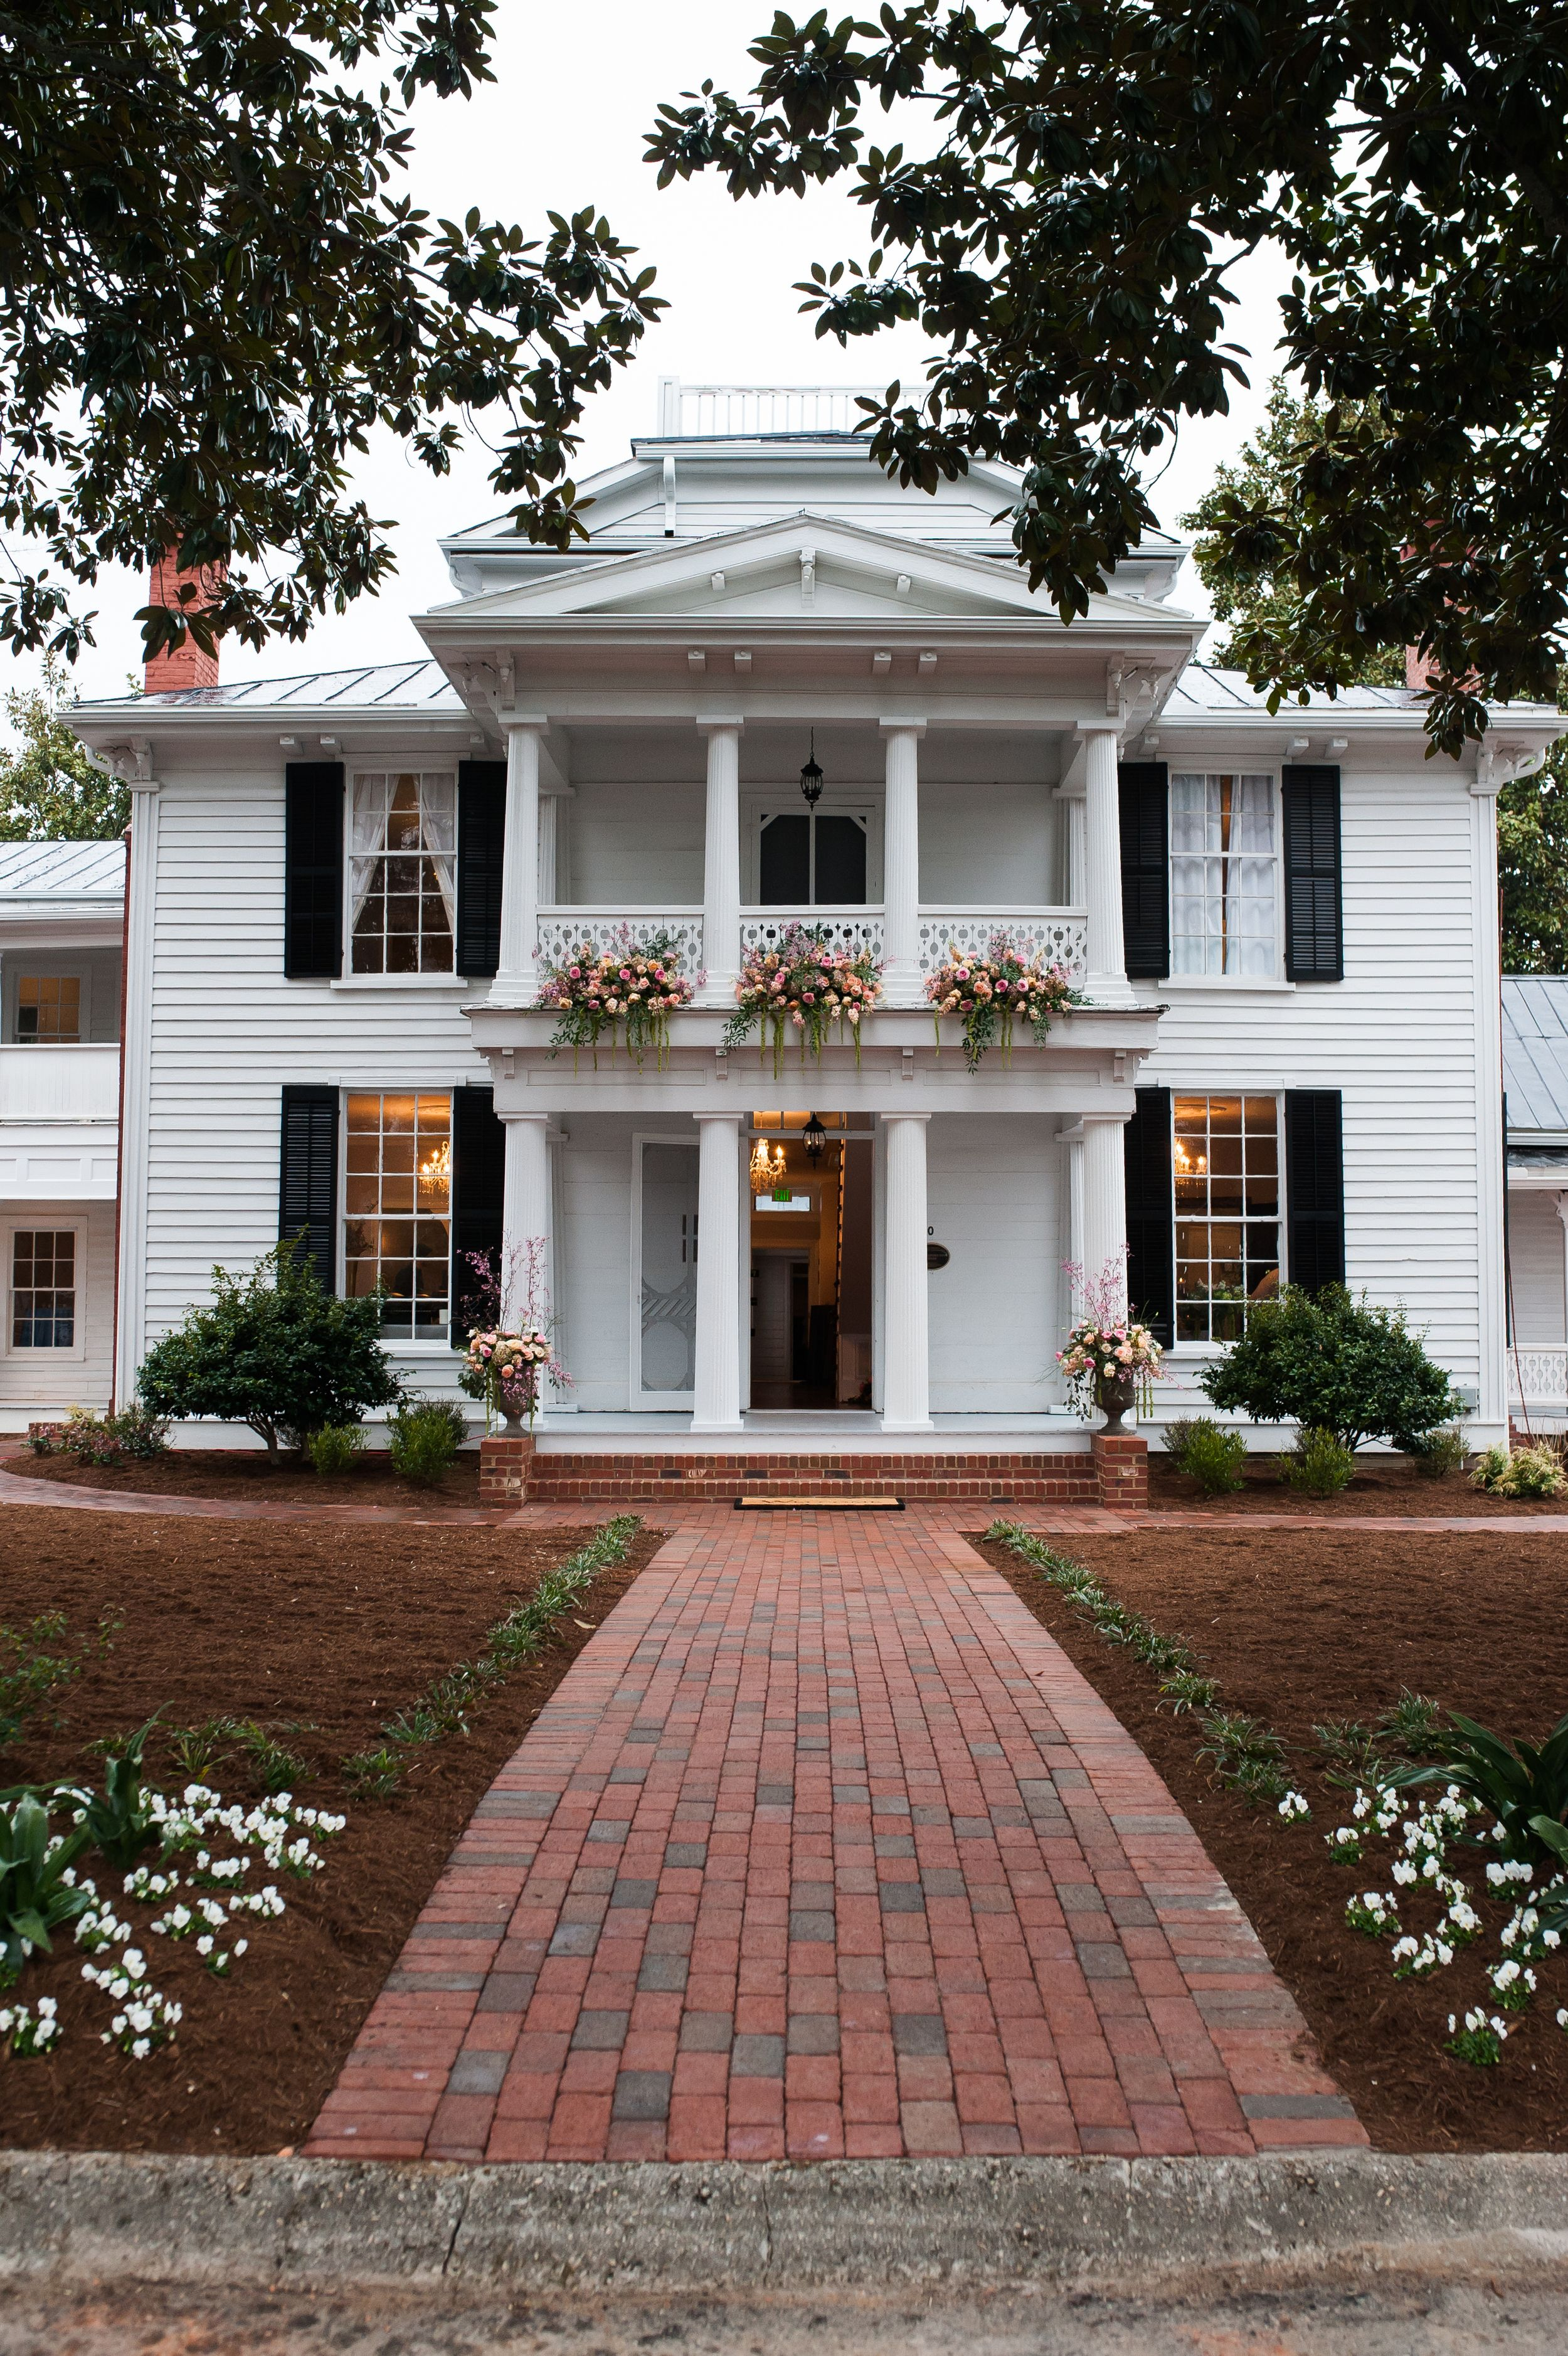 Beautiful white two story colonial house with a double balcony